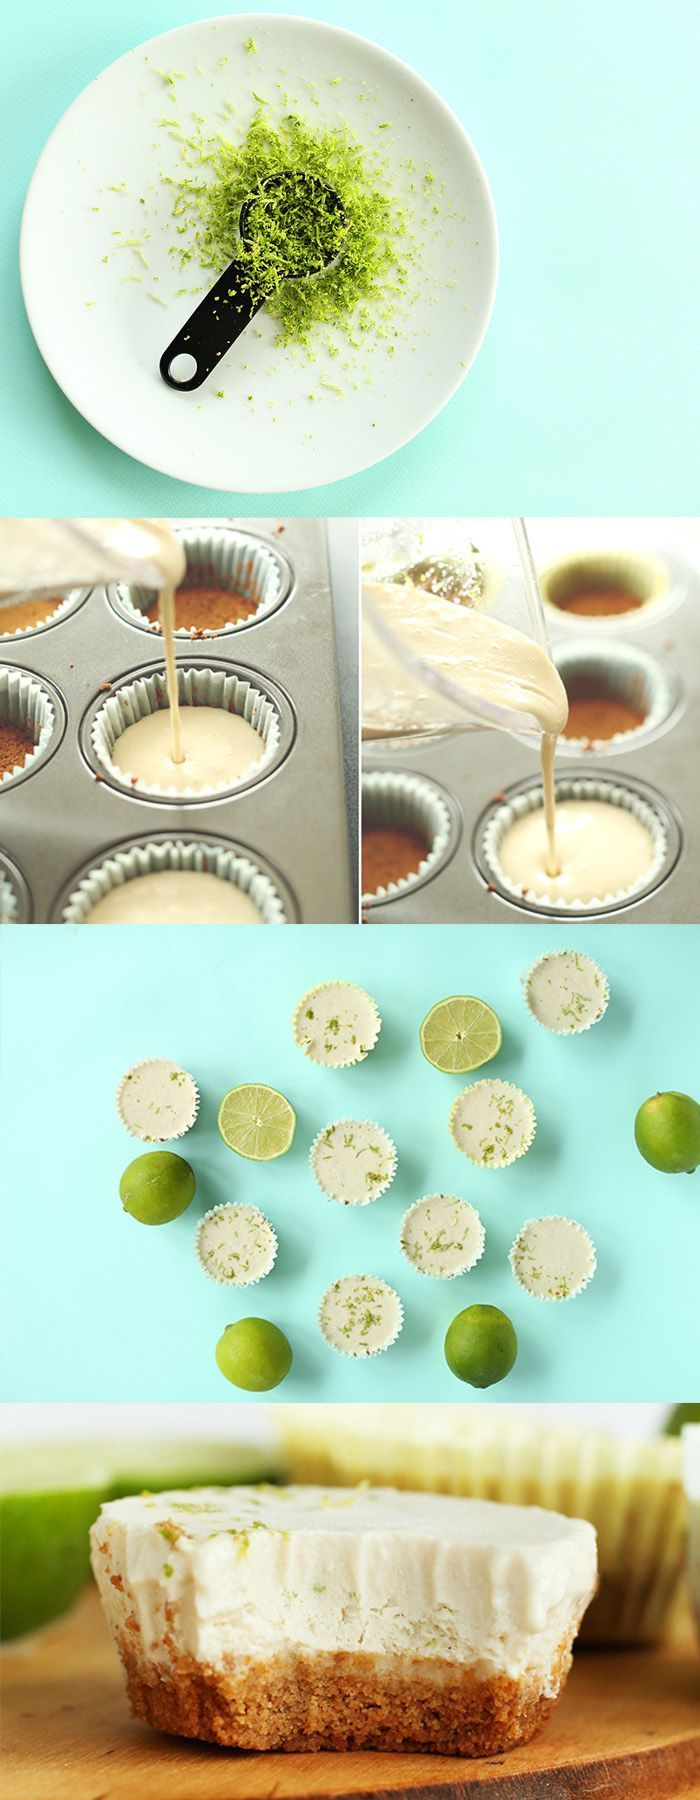 7 Ingredient Vegan Key Lime Pie Bites! Super creamy and delicious, yum!